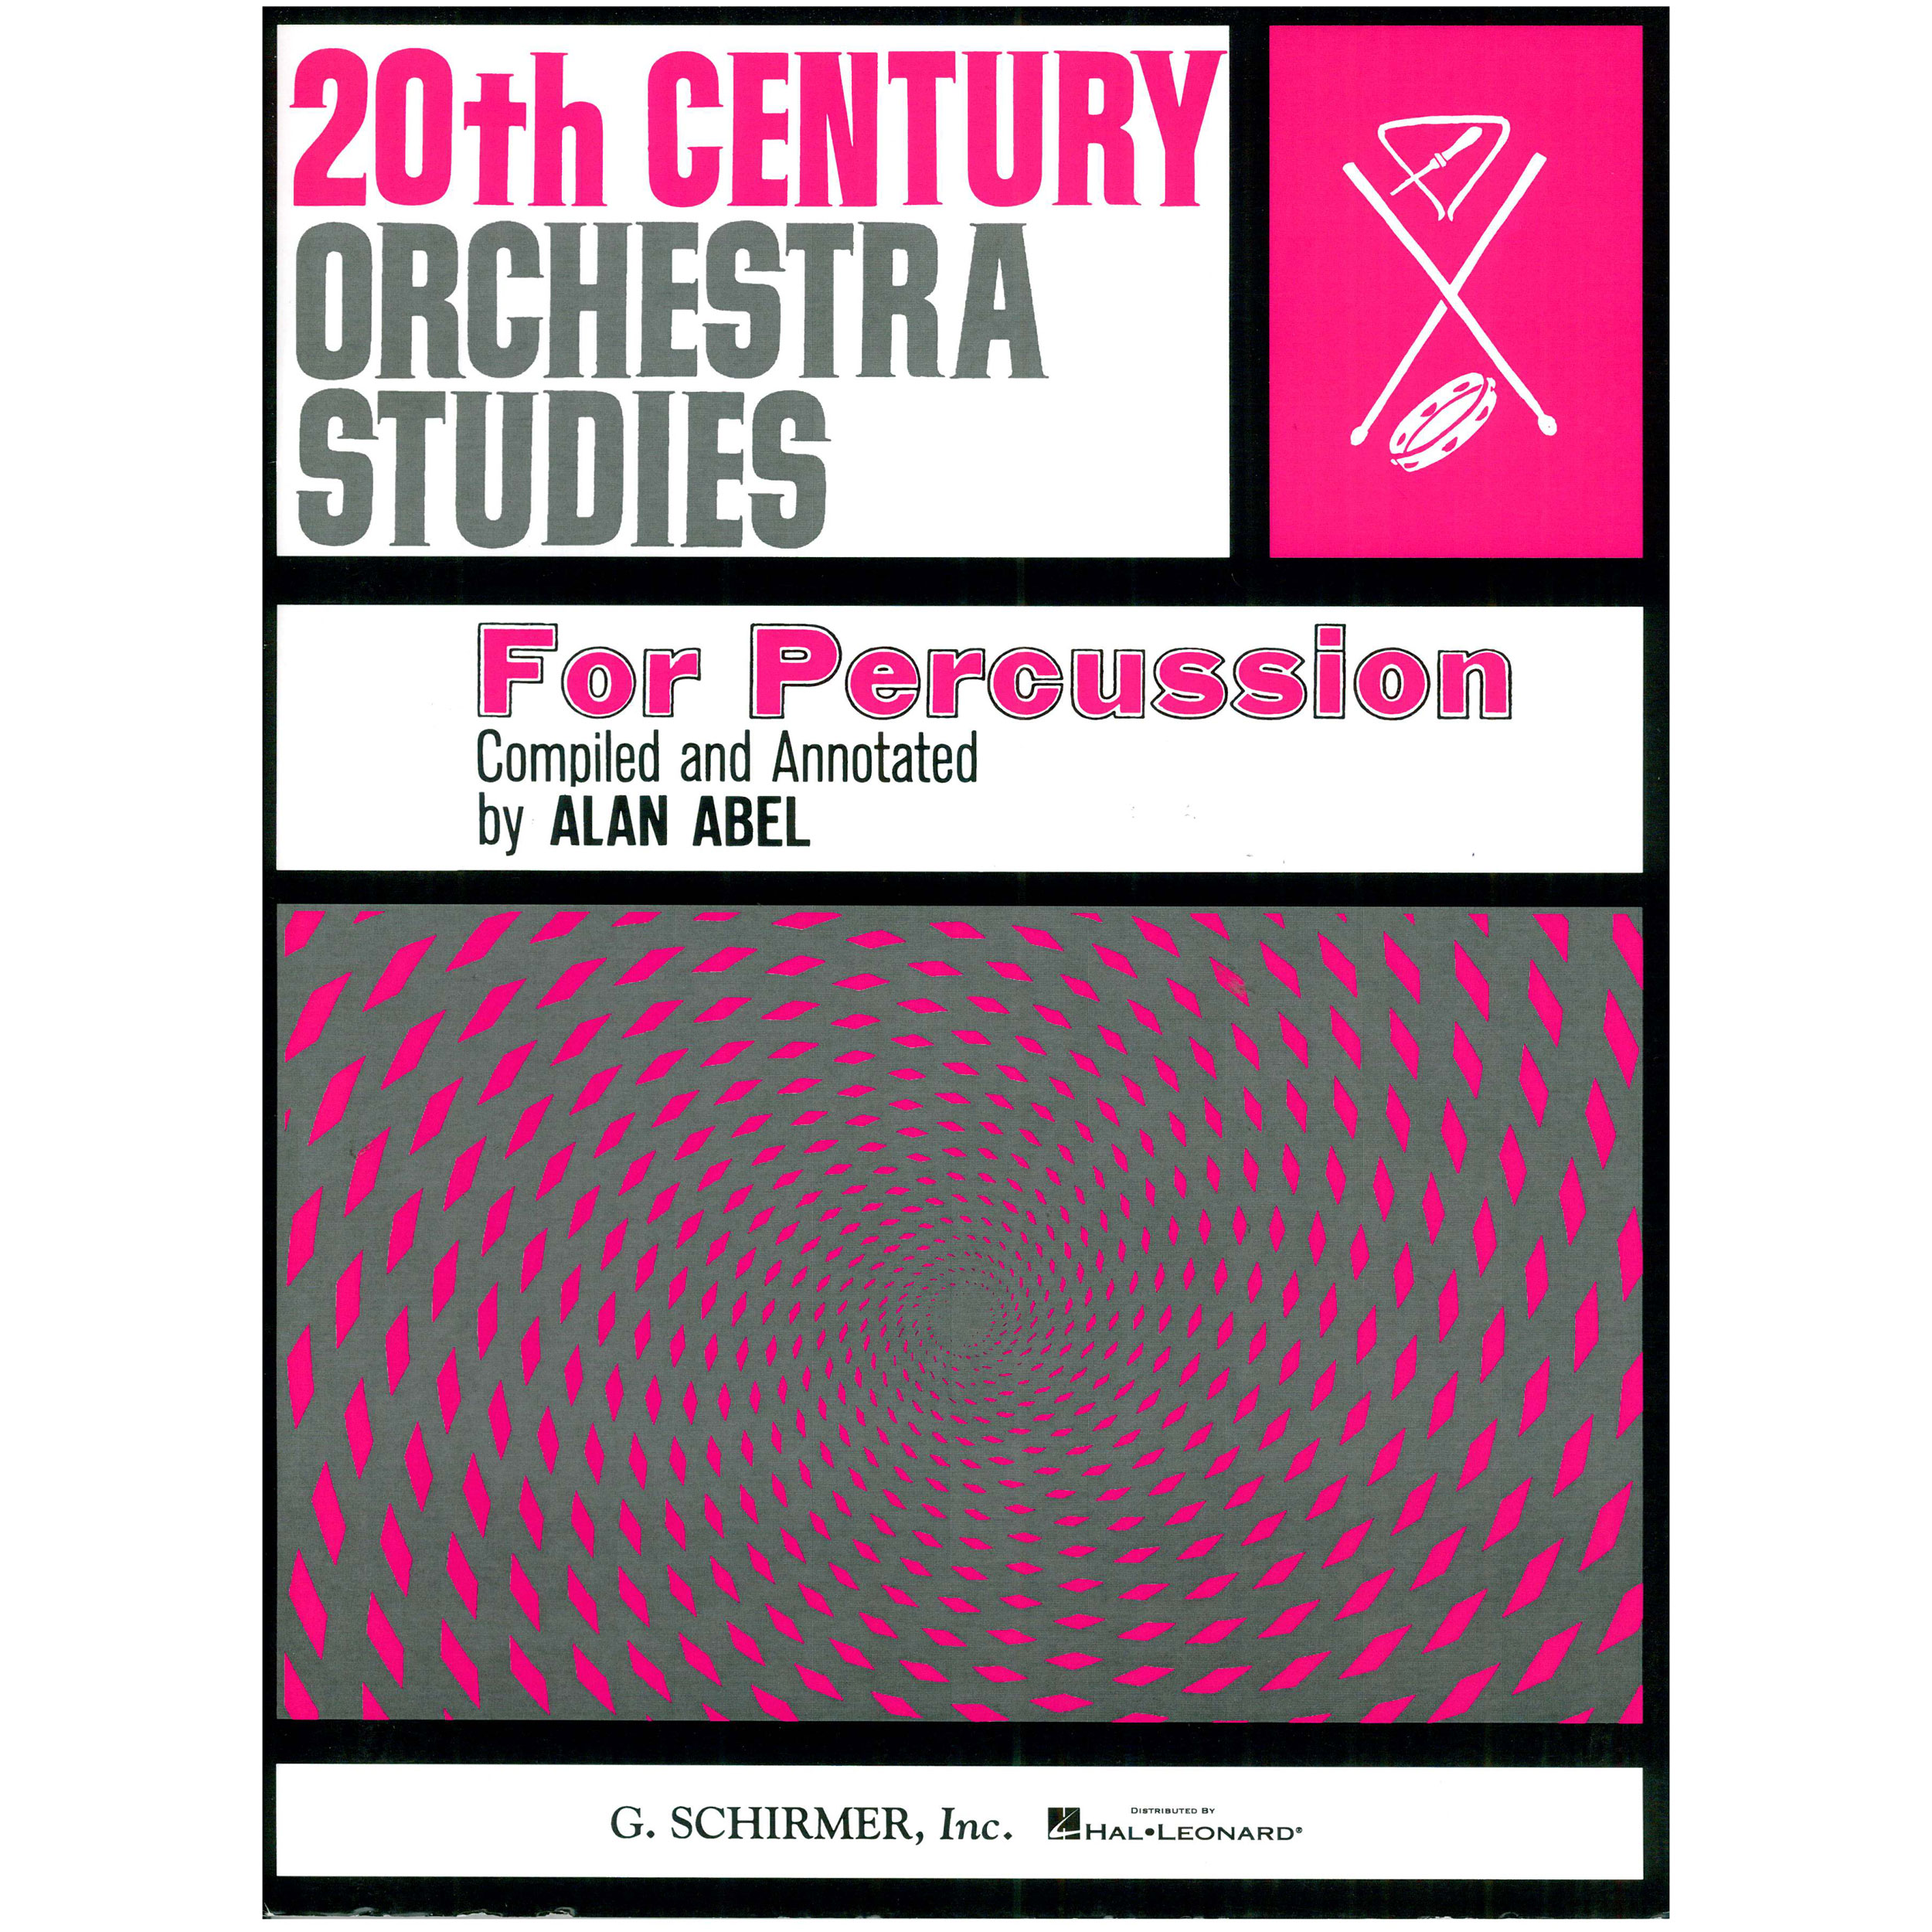 20th Century Orchestra Studies for Percussion by Alan Abel